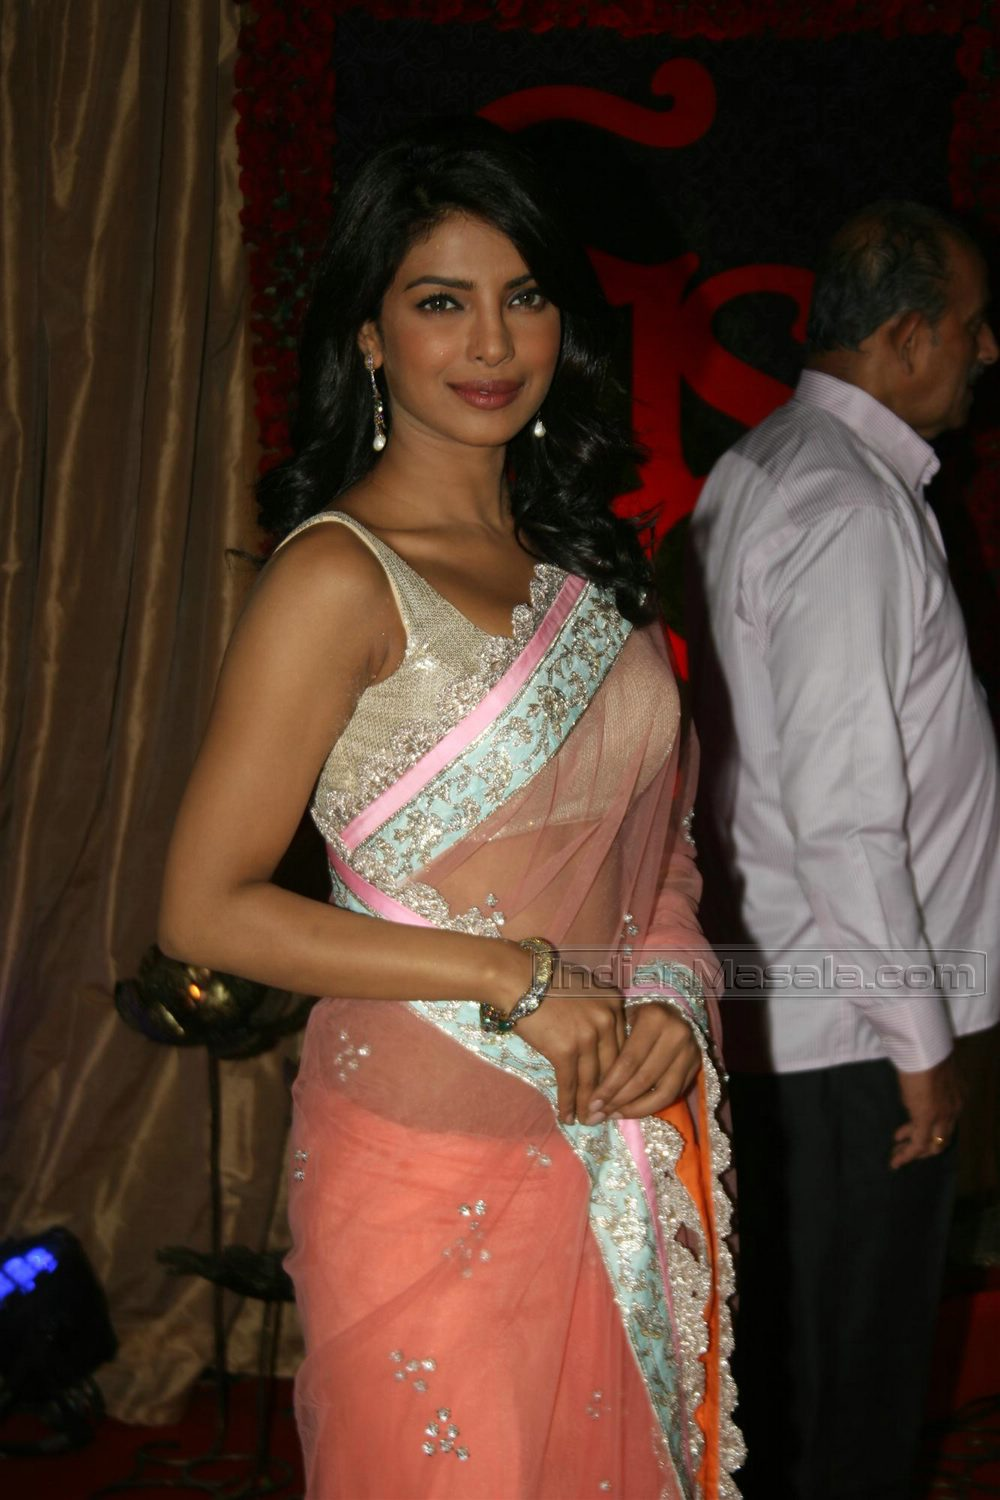 bollywood beautiful diva priyanka chopra looks hot in saree hot girls of bollywoods